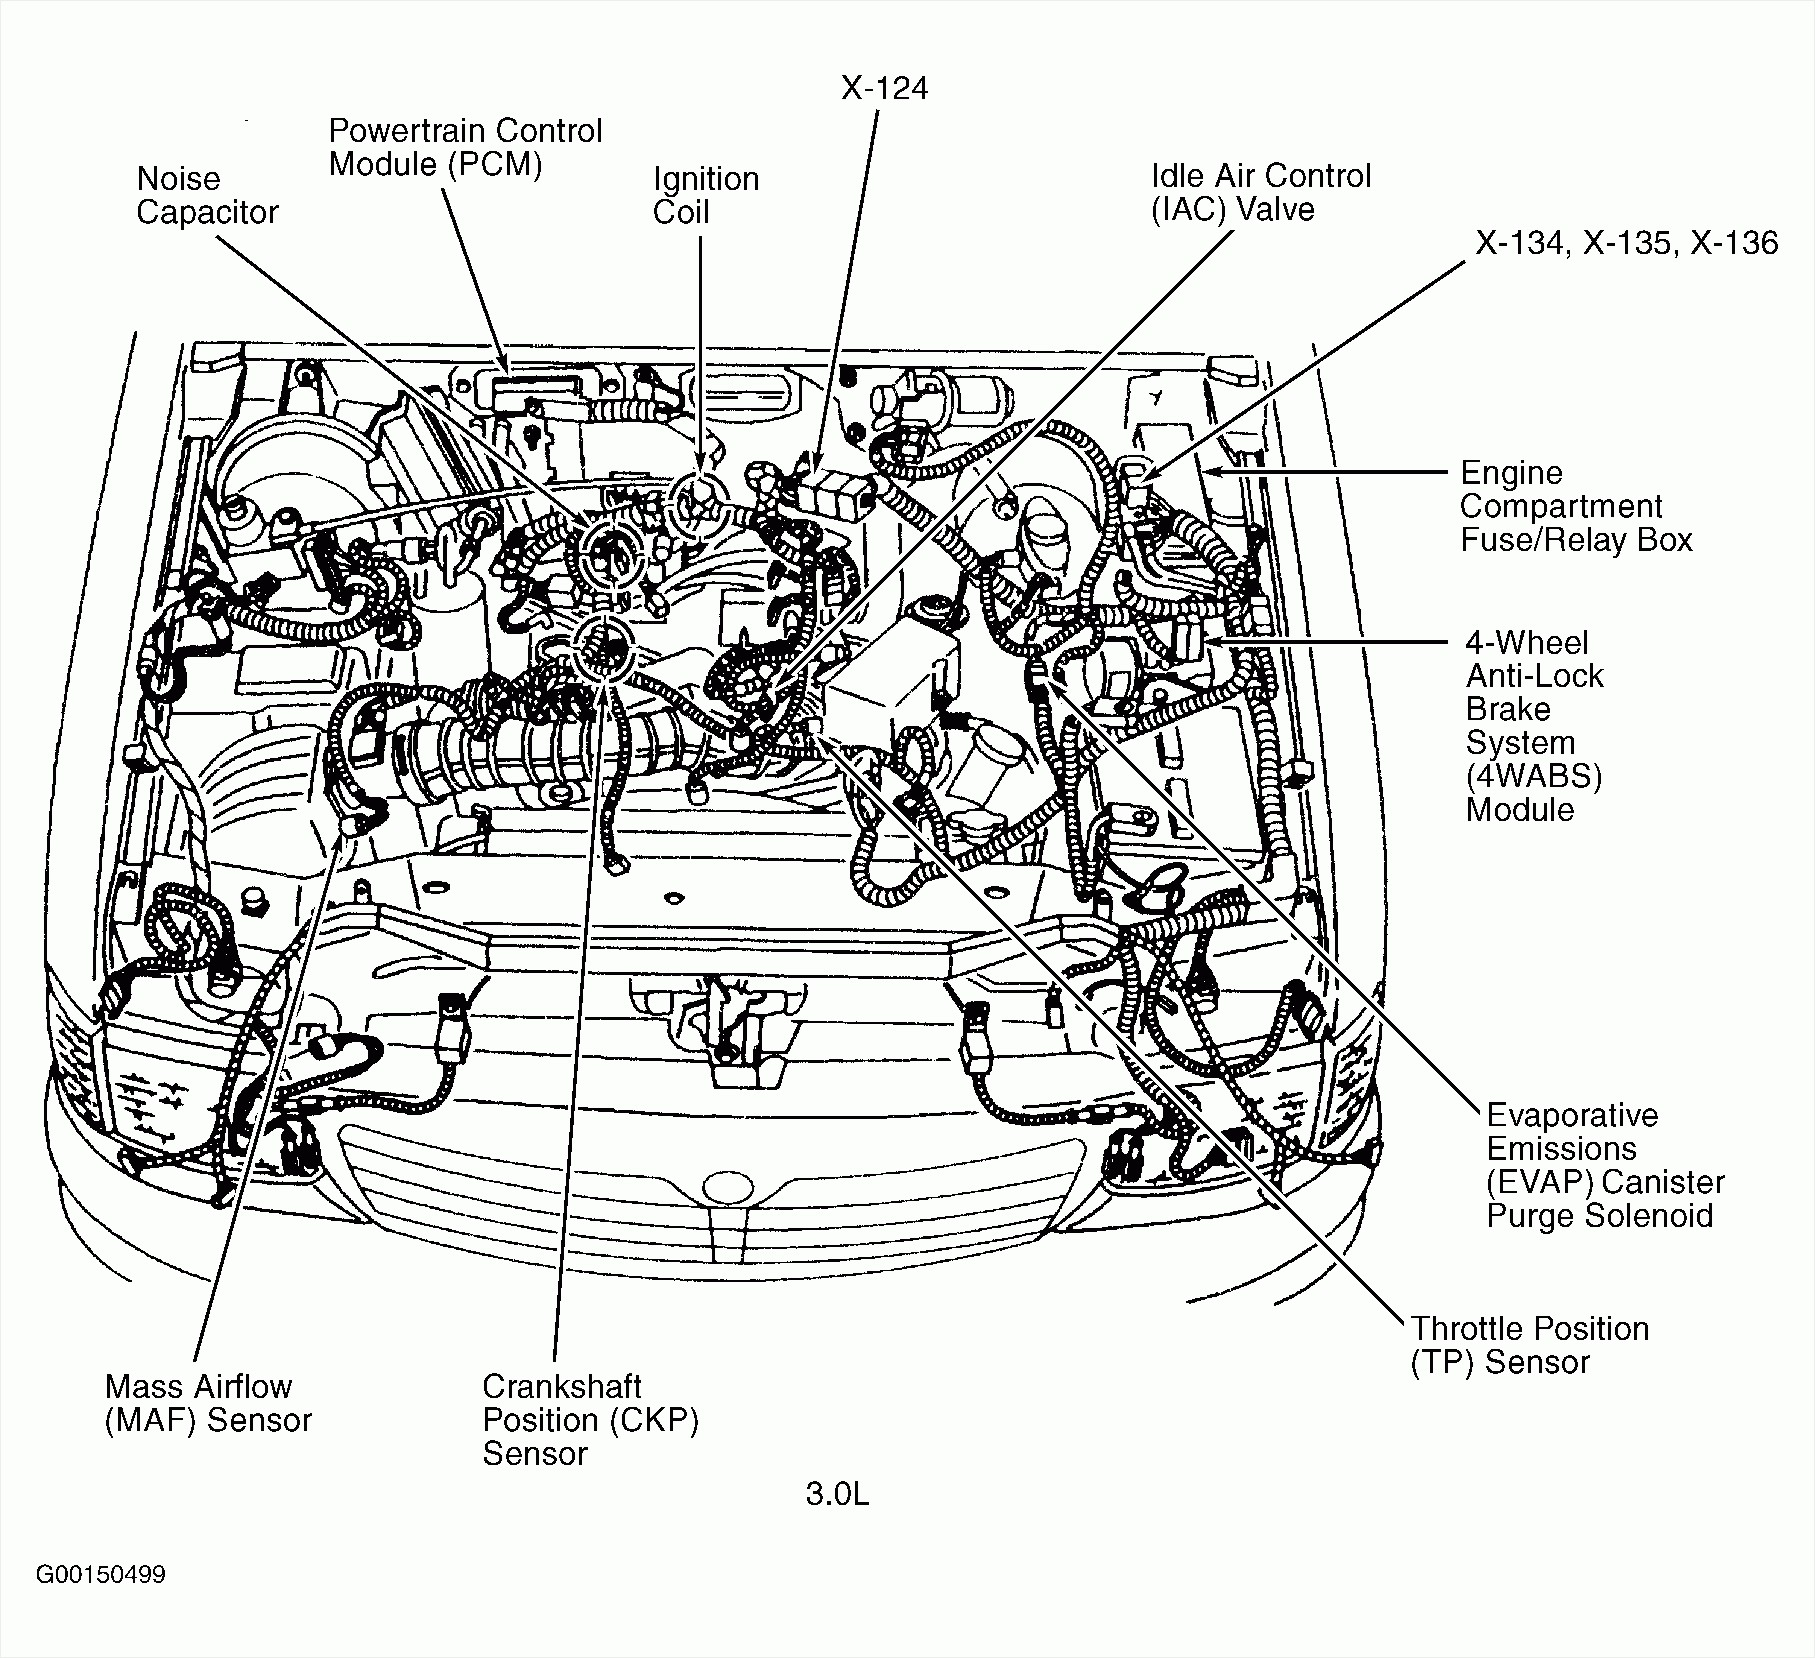 hight resolution of audi s4 engine diagram blog wiring diagram audi engine diagram wiring diagram blog 2001 audi s4